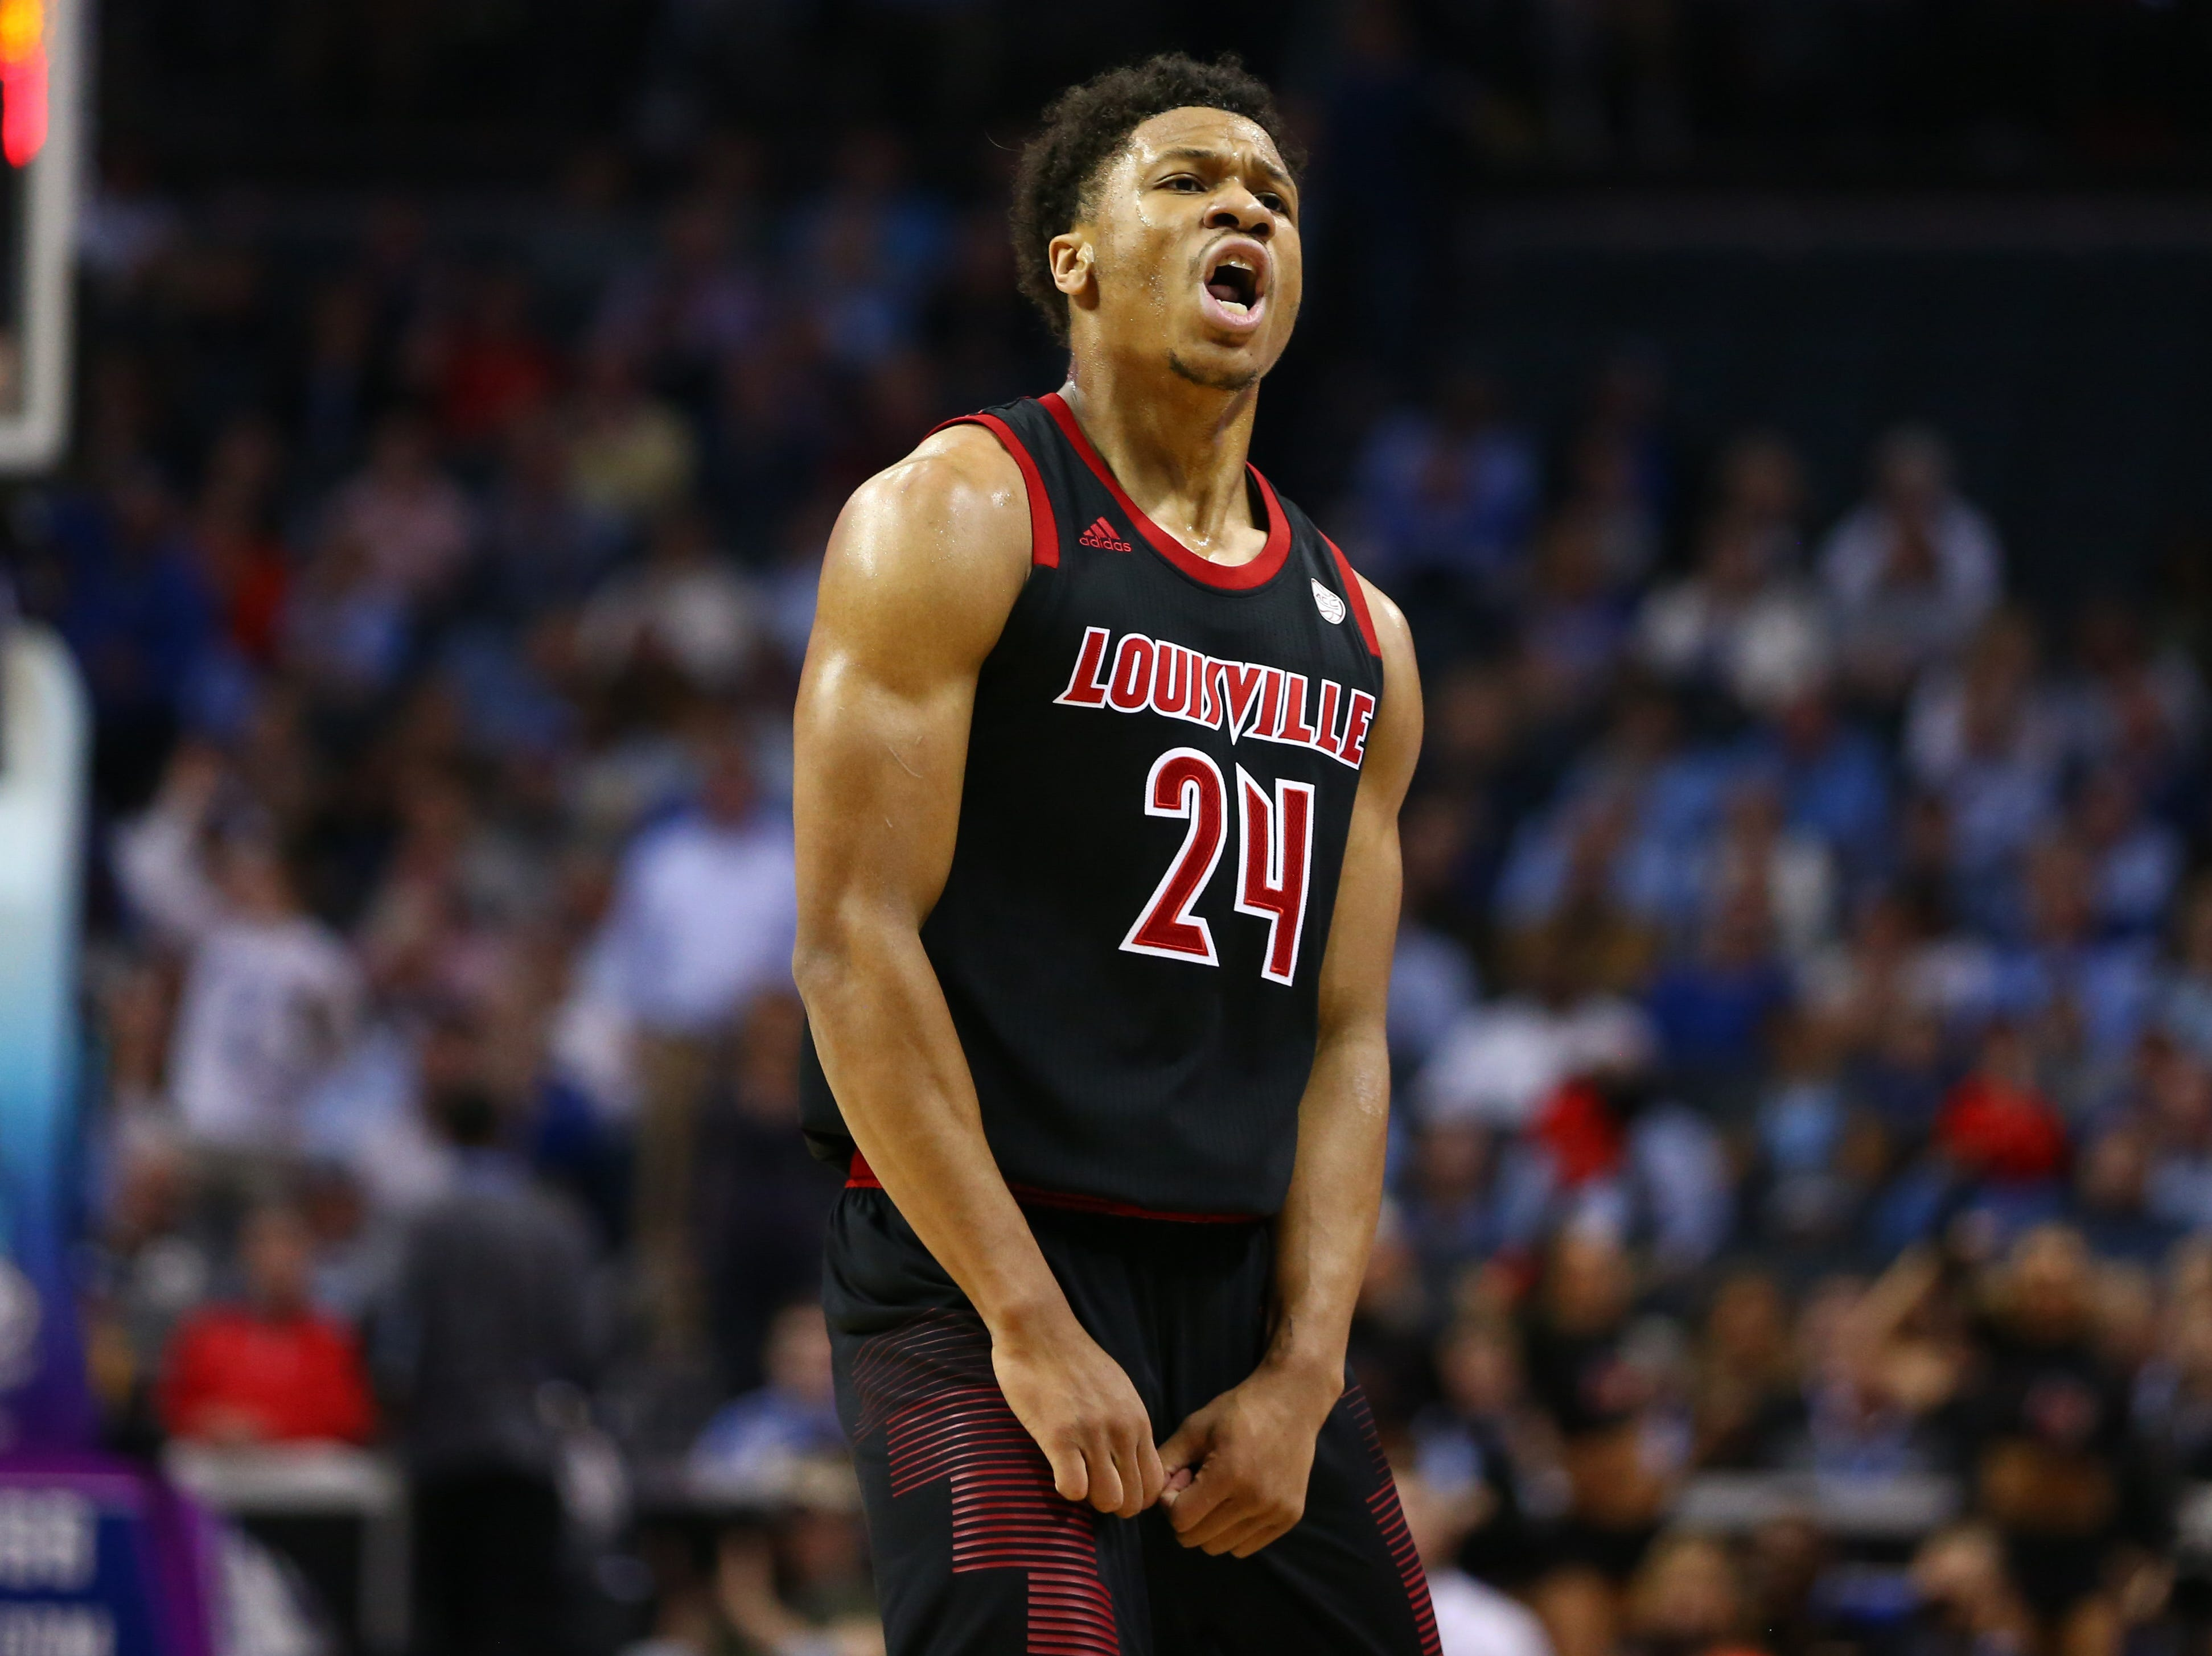 Louisville (20-13), No. 7 seed in East, at-large bid out of Atlantic Coast Conference